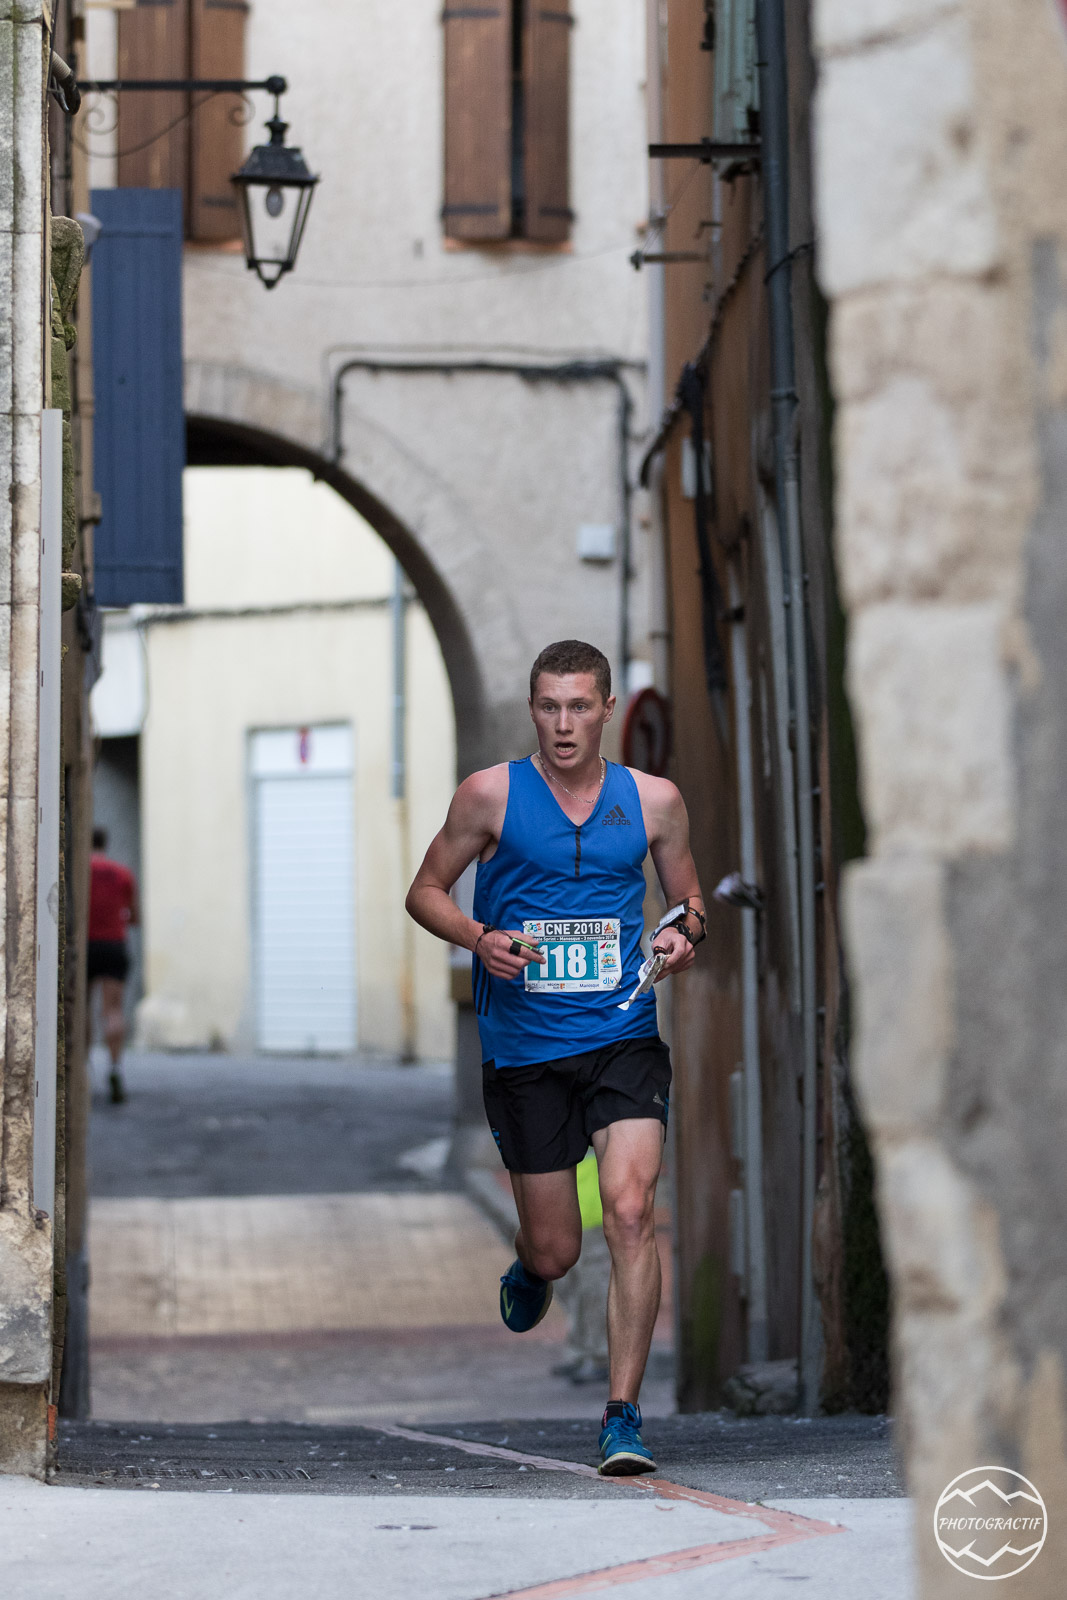 CDF Sprint CO Manosque 2018 (13)